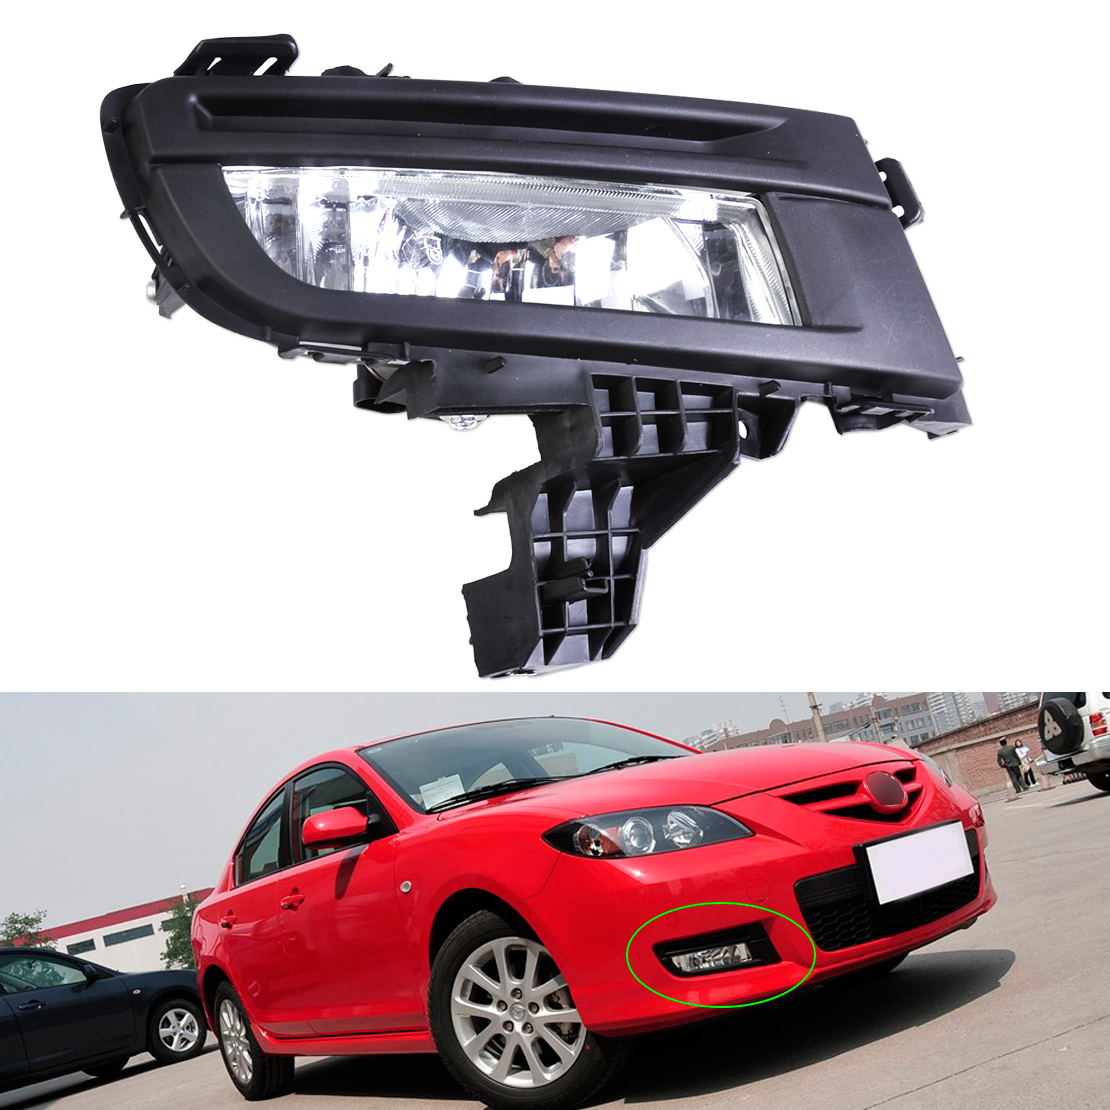 beler 1Pc high quality ABS plastic New Front Right Fog Light Lamp 9006 12V 51W for Mazda 3 2007 2008 2009 Replacement MA2592113<br>